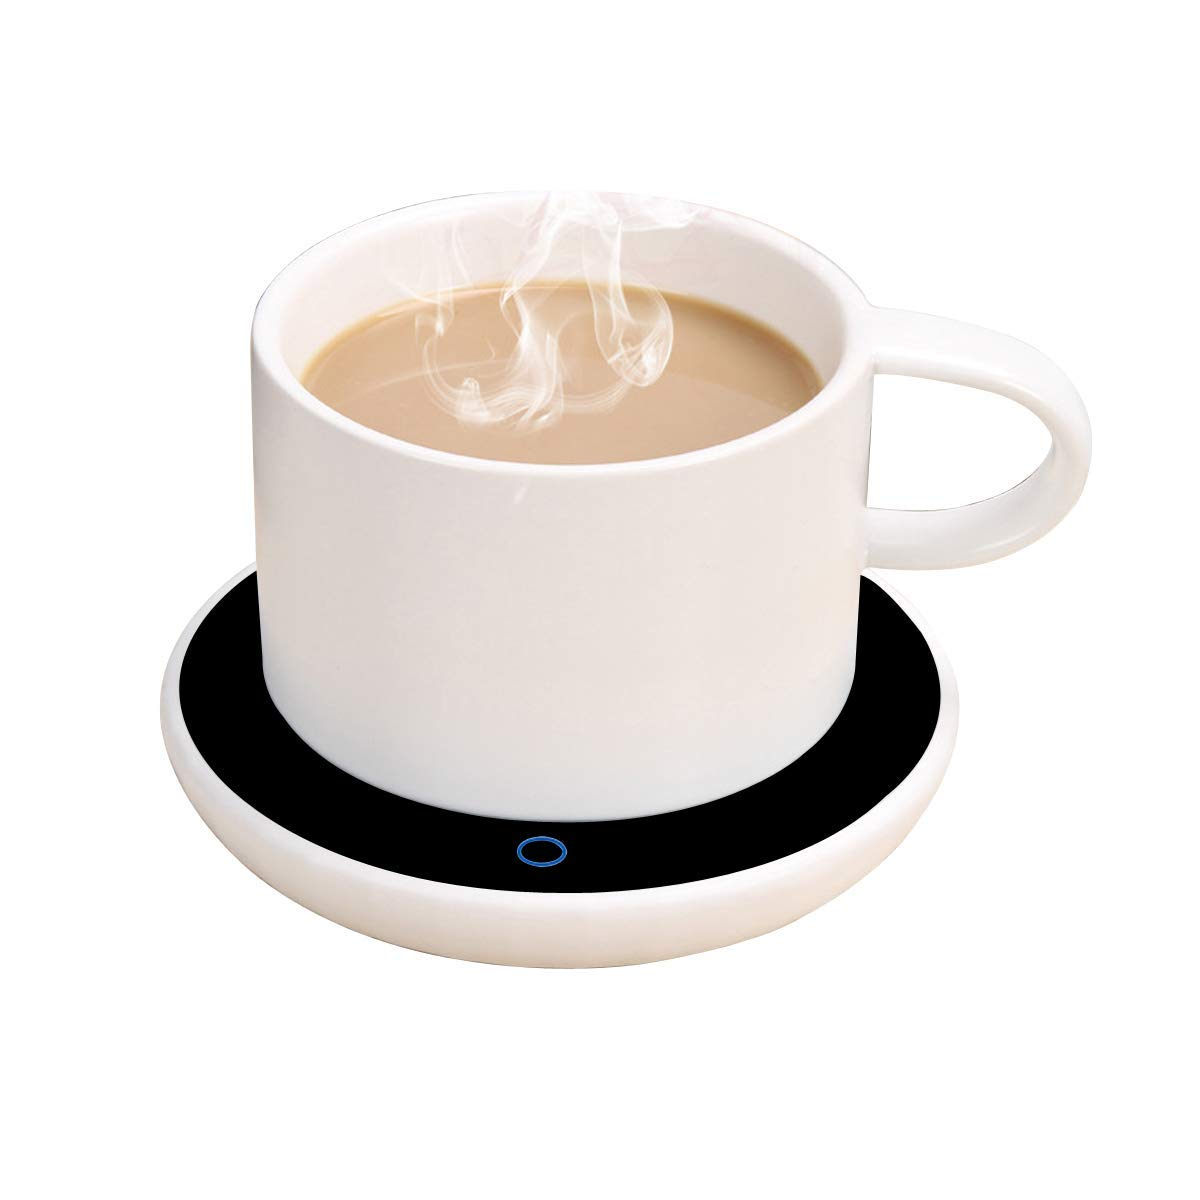 Deskofficehome Idea Electric Tea Beverageamp; Warmer PlateAviation UseBest Mug Gift Cup Candle Plate Coffee Aluminum For xBQWdoerCE